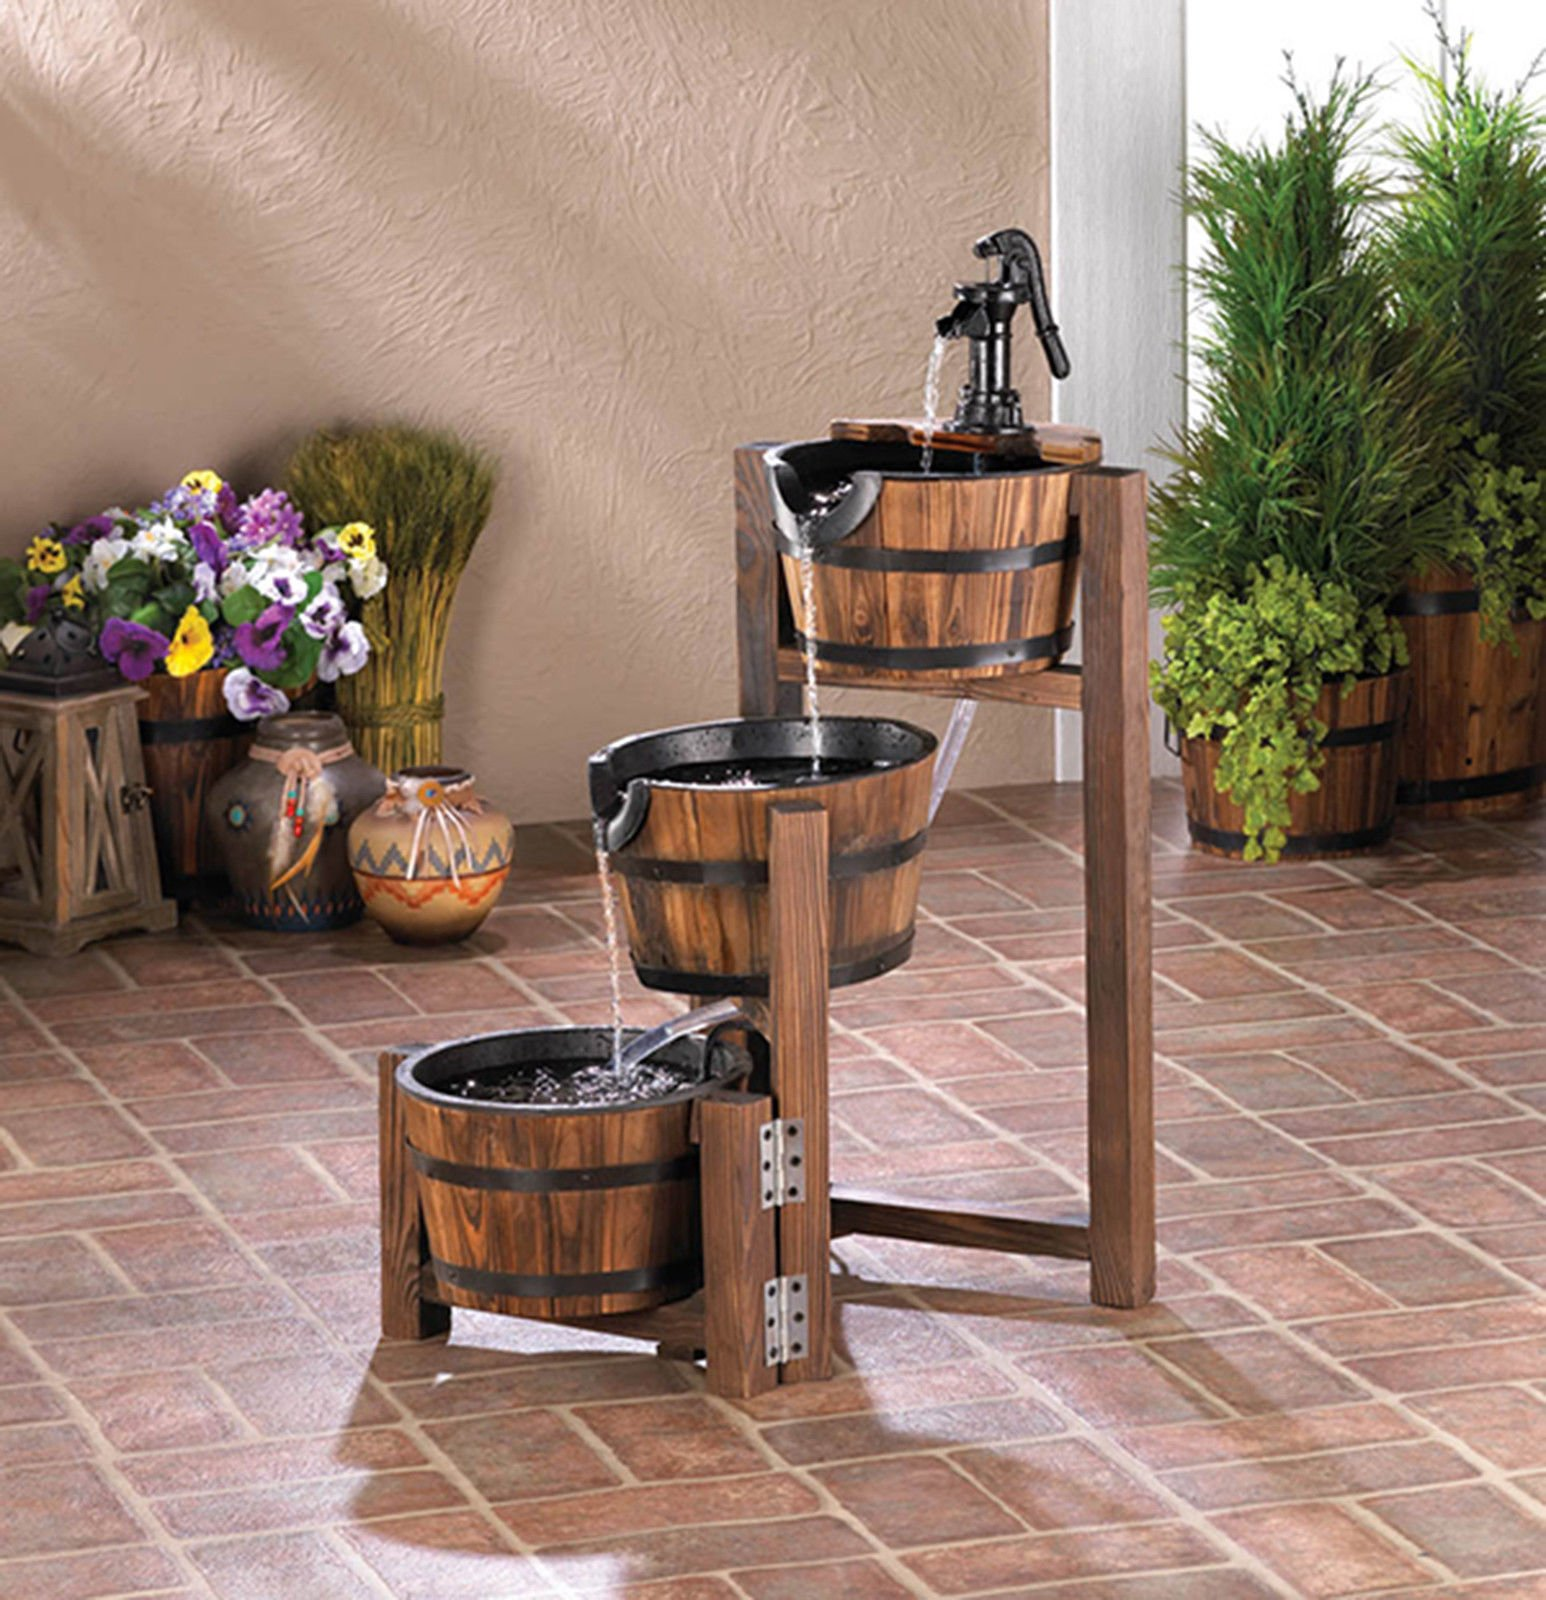 APPLE BARREL CASCADING Three Tiered Outdoor Garden Patio FOUNTAIN SLC 10017256 ;supply_by_berrydtreasuresboutique